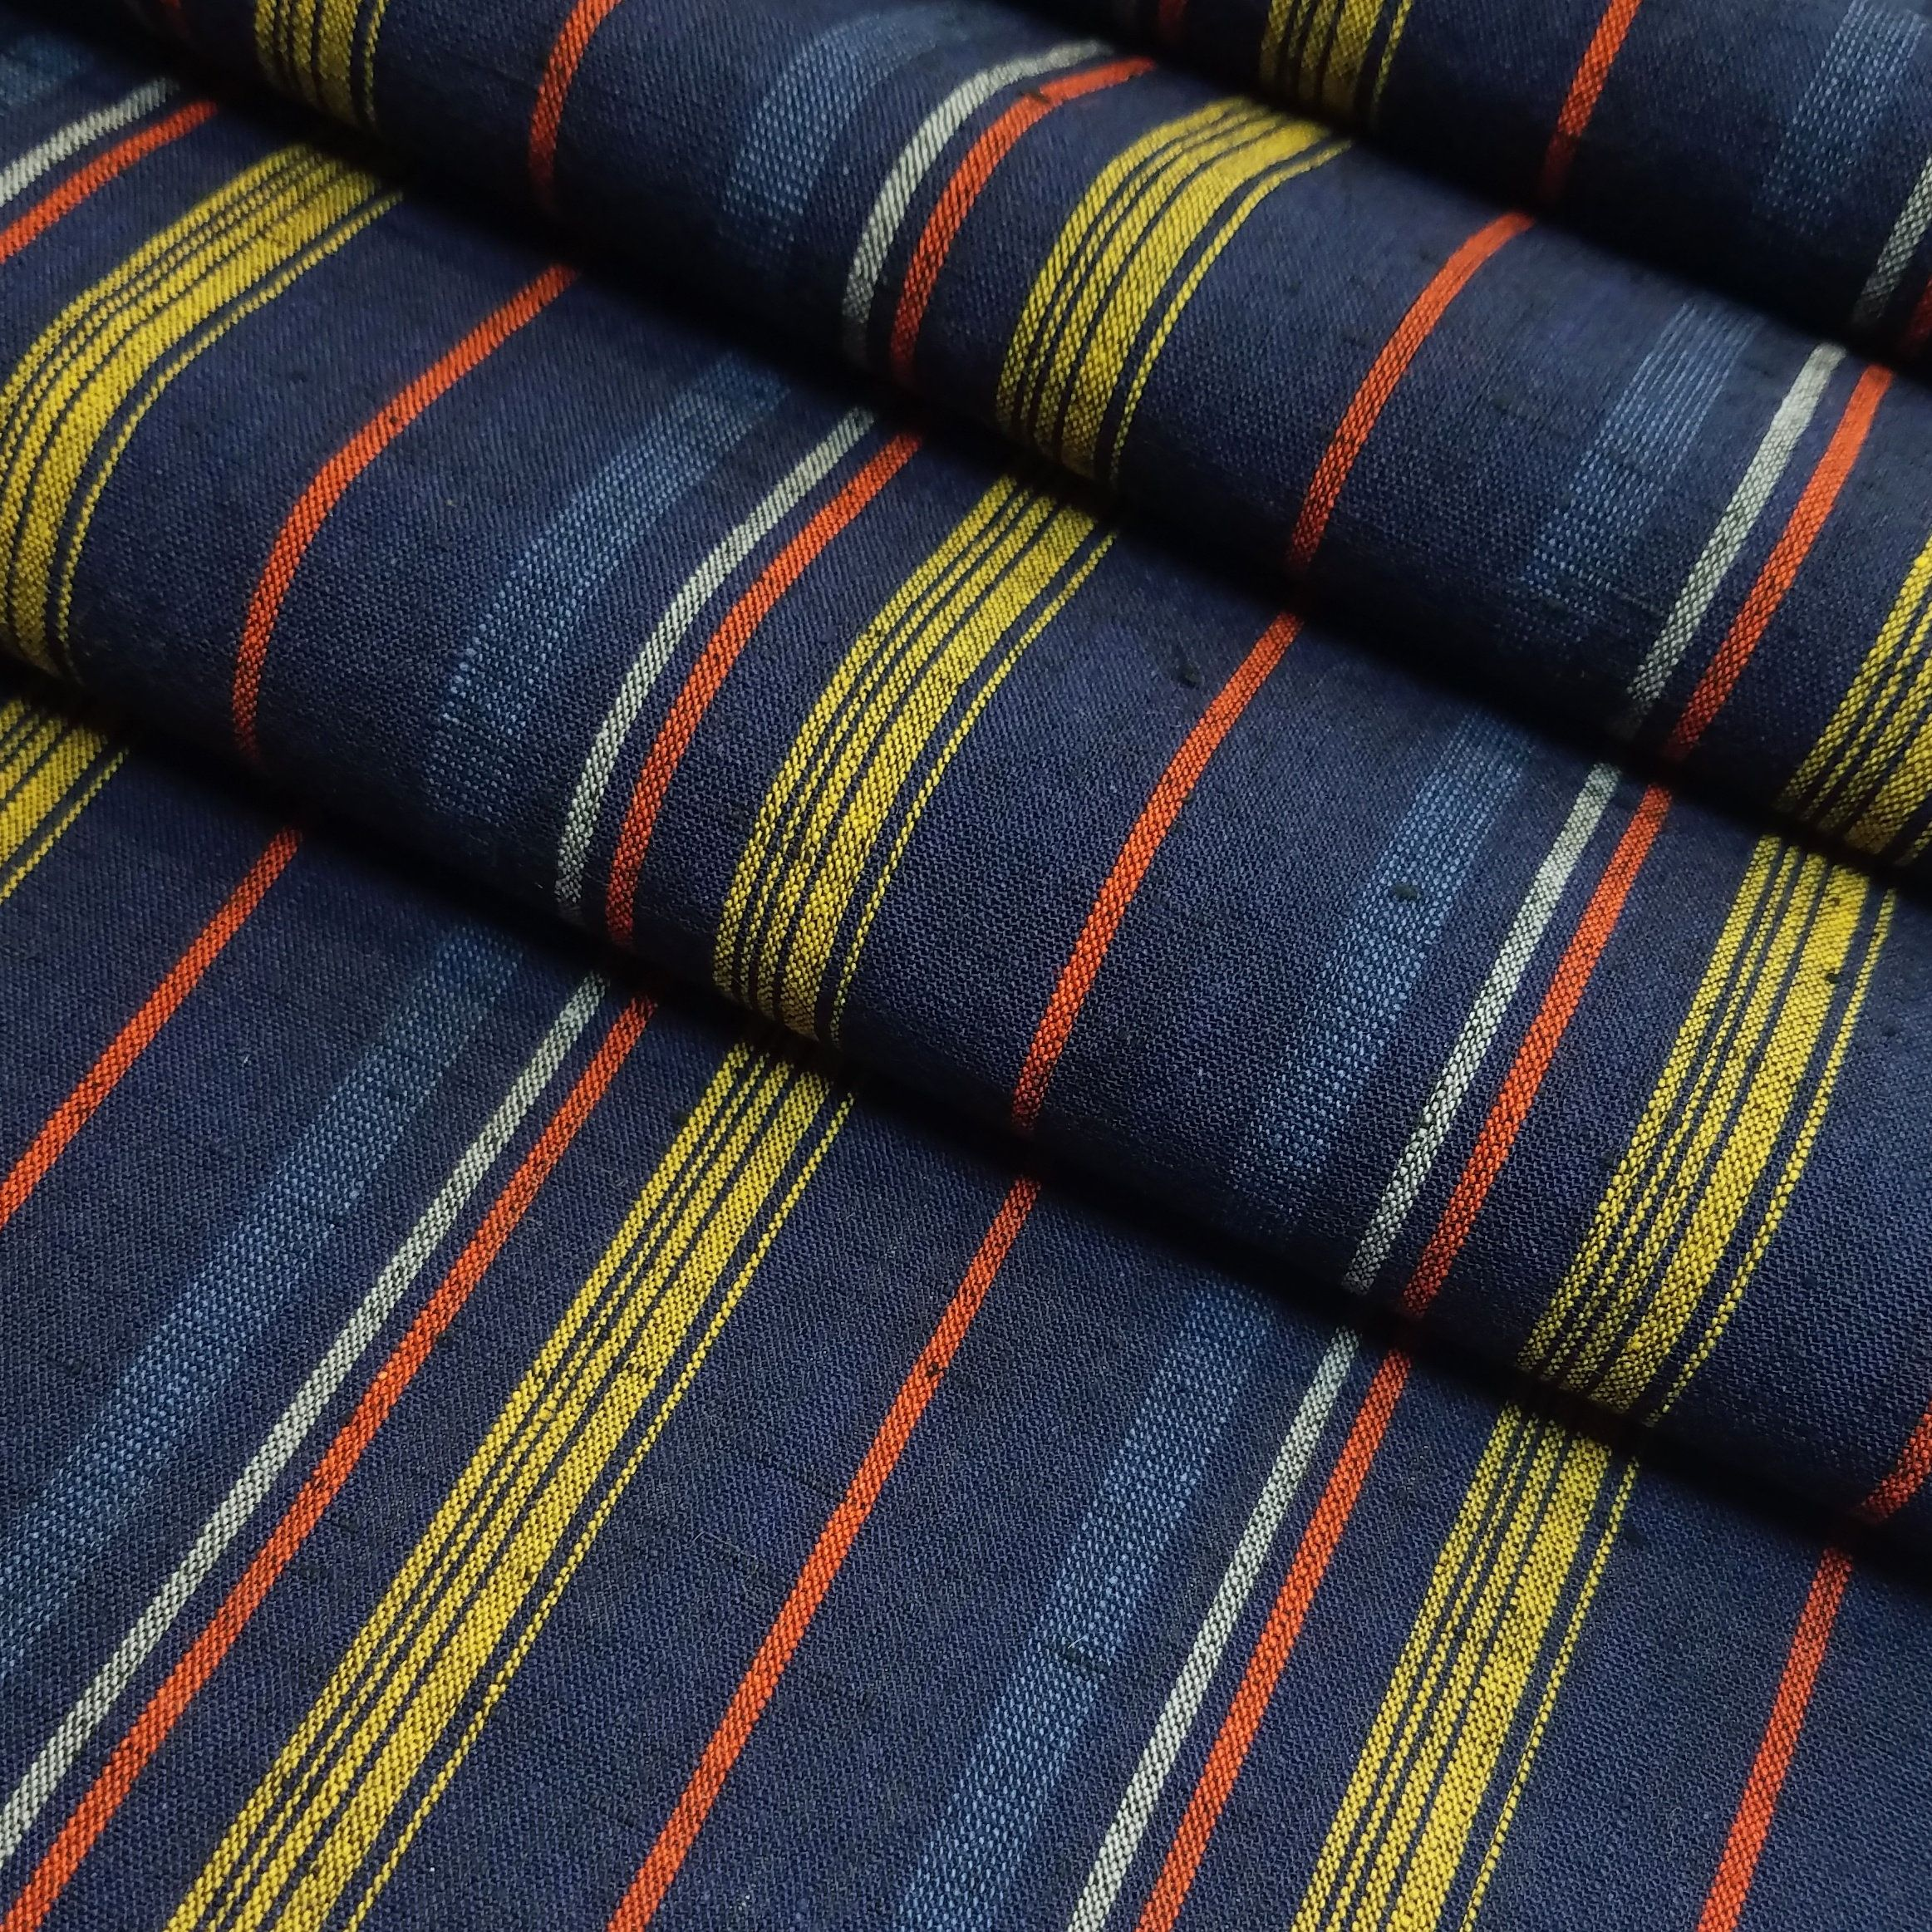 Vintage Blue Golden Ocher And Red Striped Yarn Dyed Cotton Kimono Fabric By The Yard Kimono Fabric Cotton Kimono Japanese Fabric